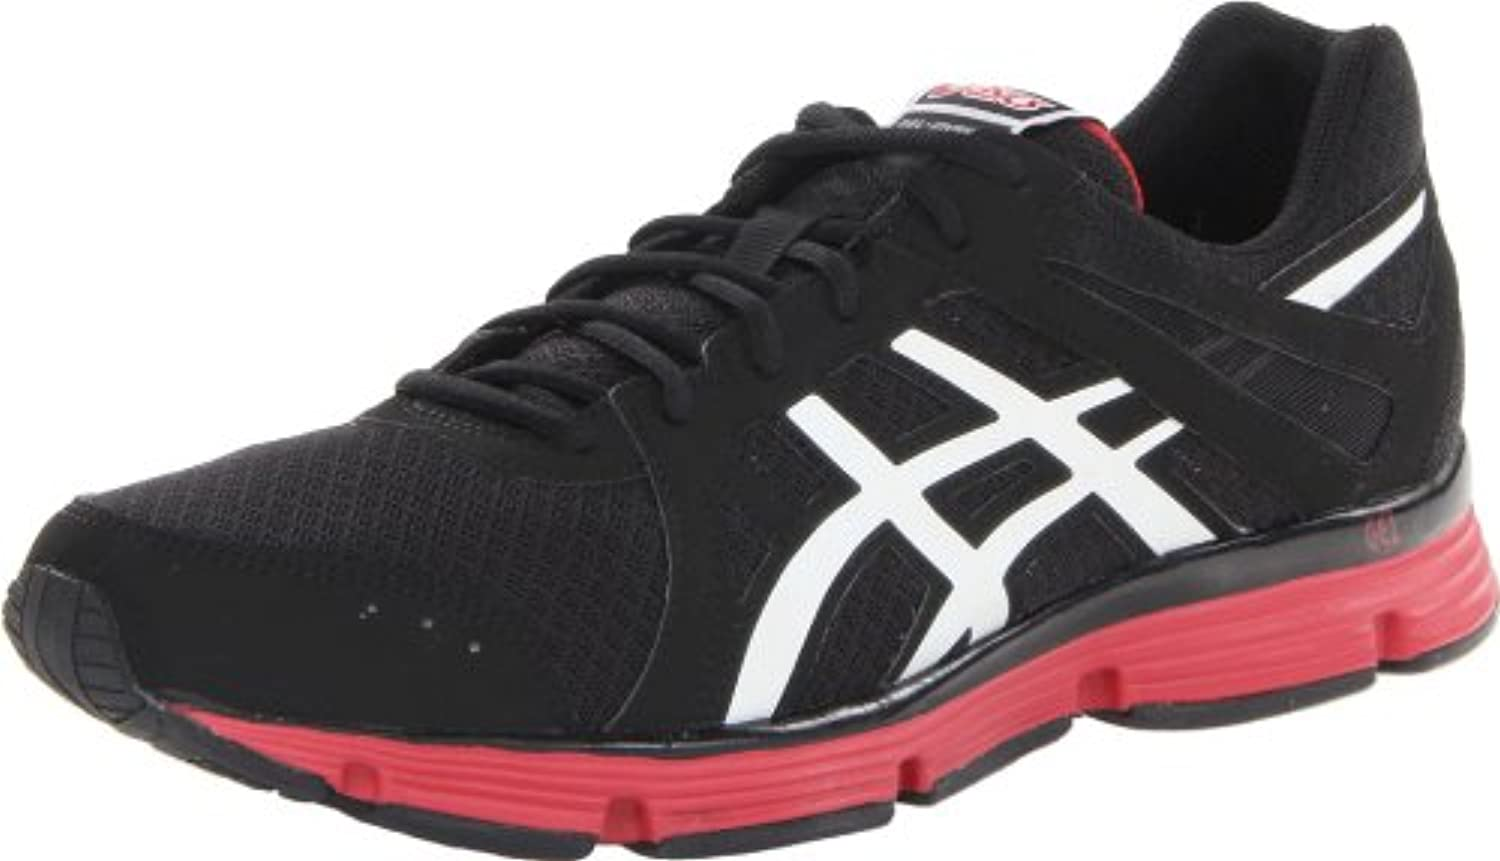 Asics 2013 Men's Gel Invasion Running Shoe   T3A0N Black/White/Red   13